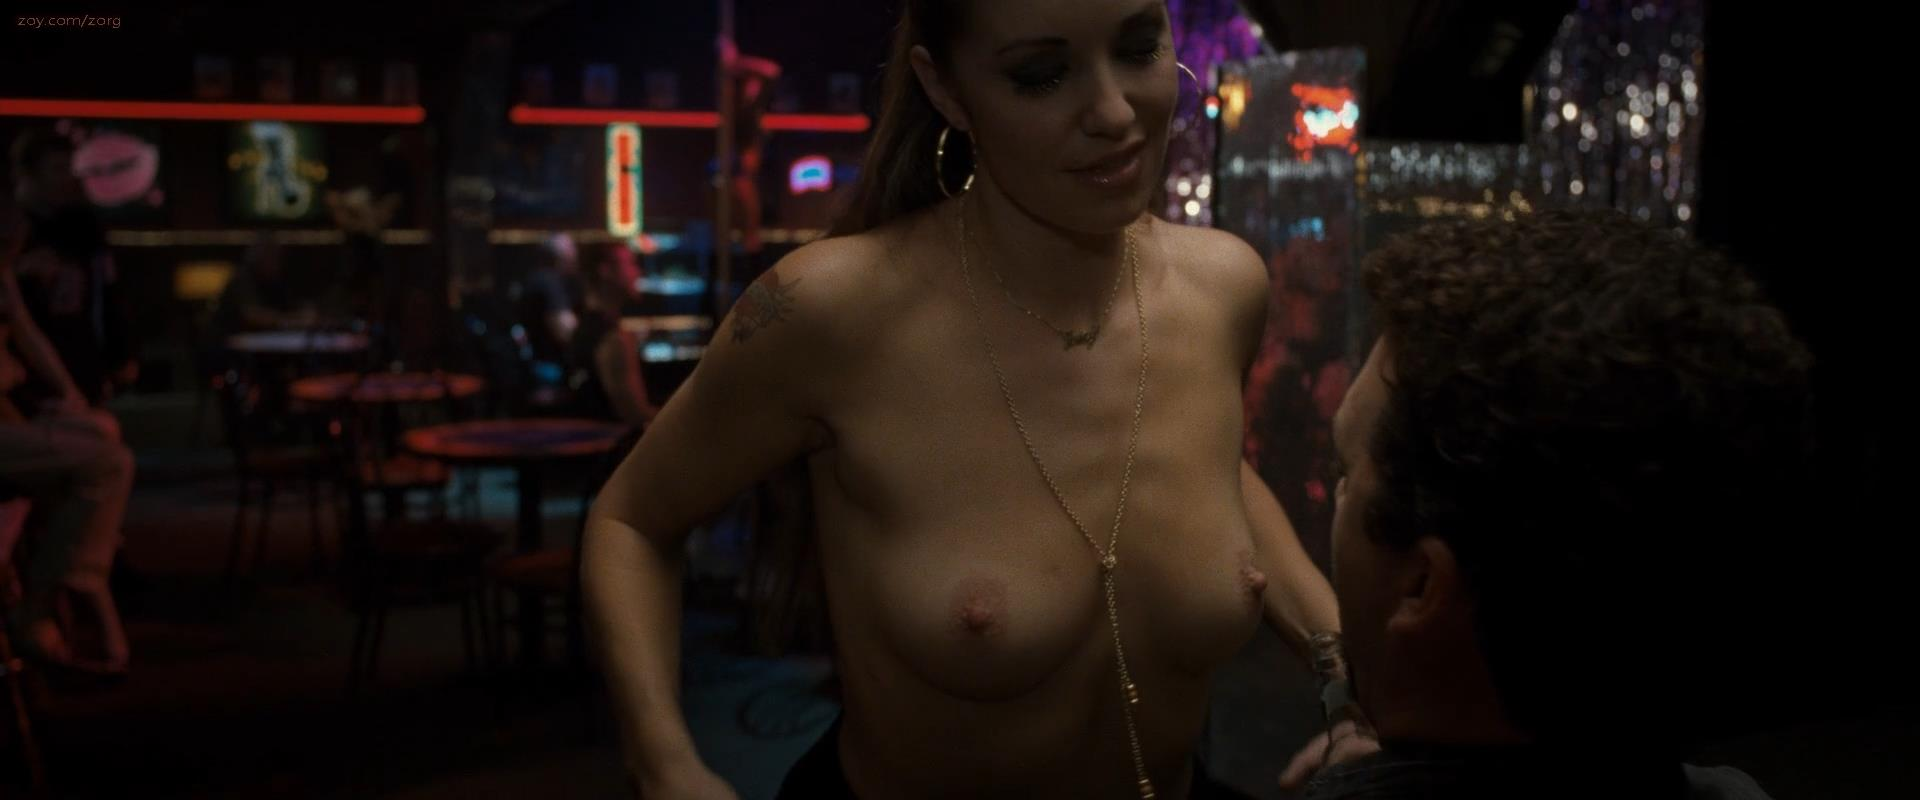 Bianca Kailich nude topless seducing a dude in – 30 Minutes or Less (2011) hd1080p